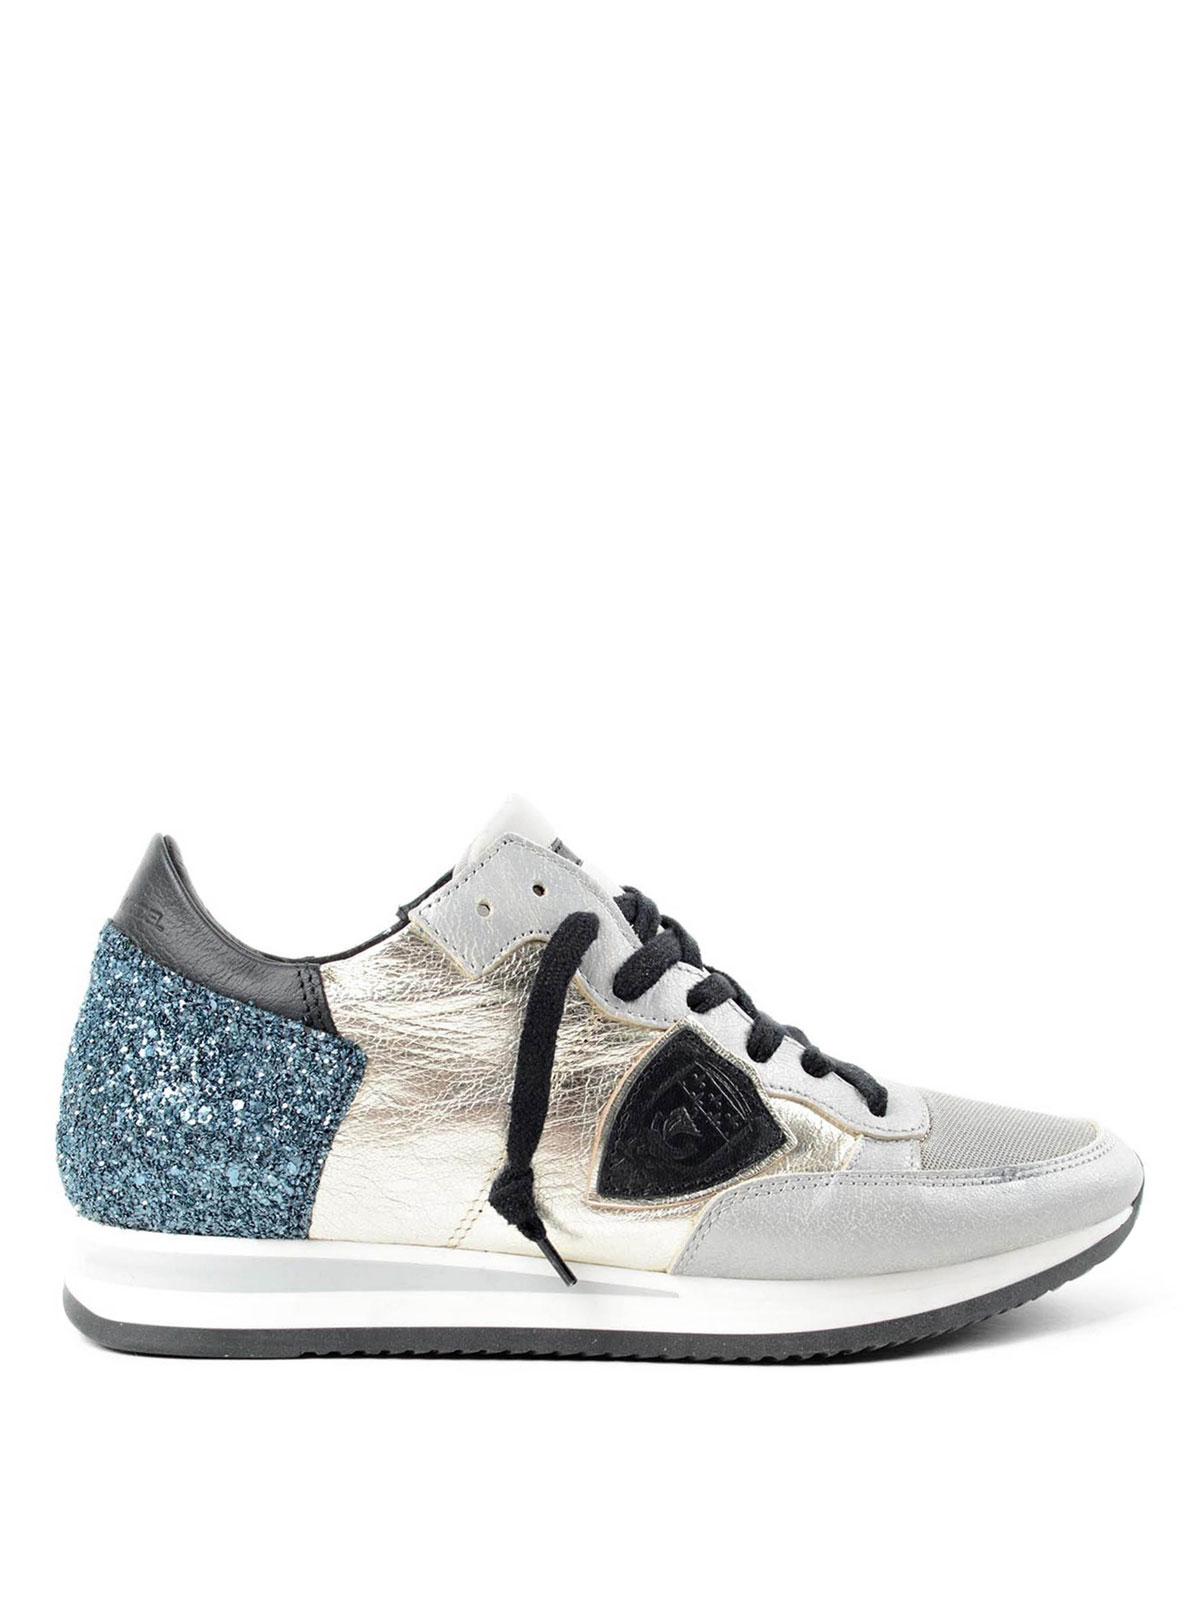 tropez glitter detailed sneakers by philippe model trainers ikrix. Black Bedroom Furniture Sets. Home Design Ideas